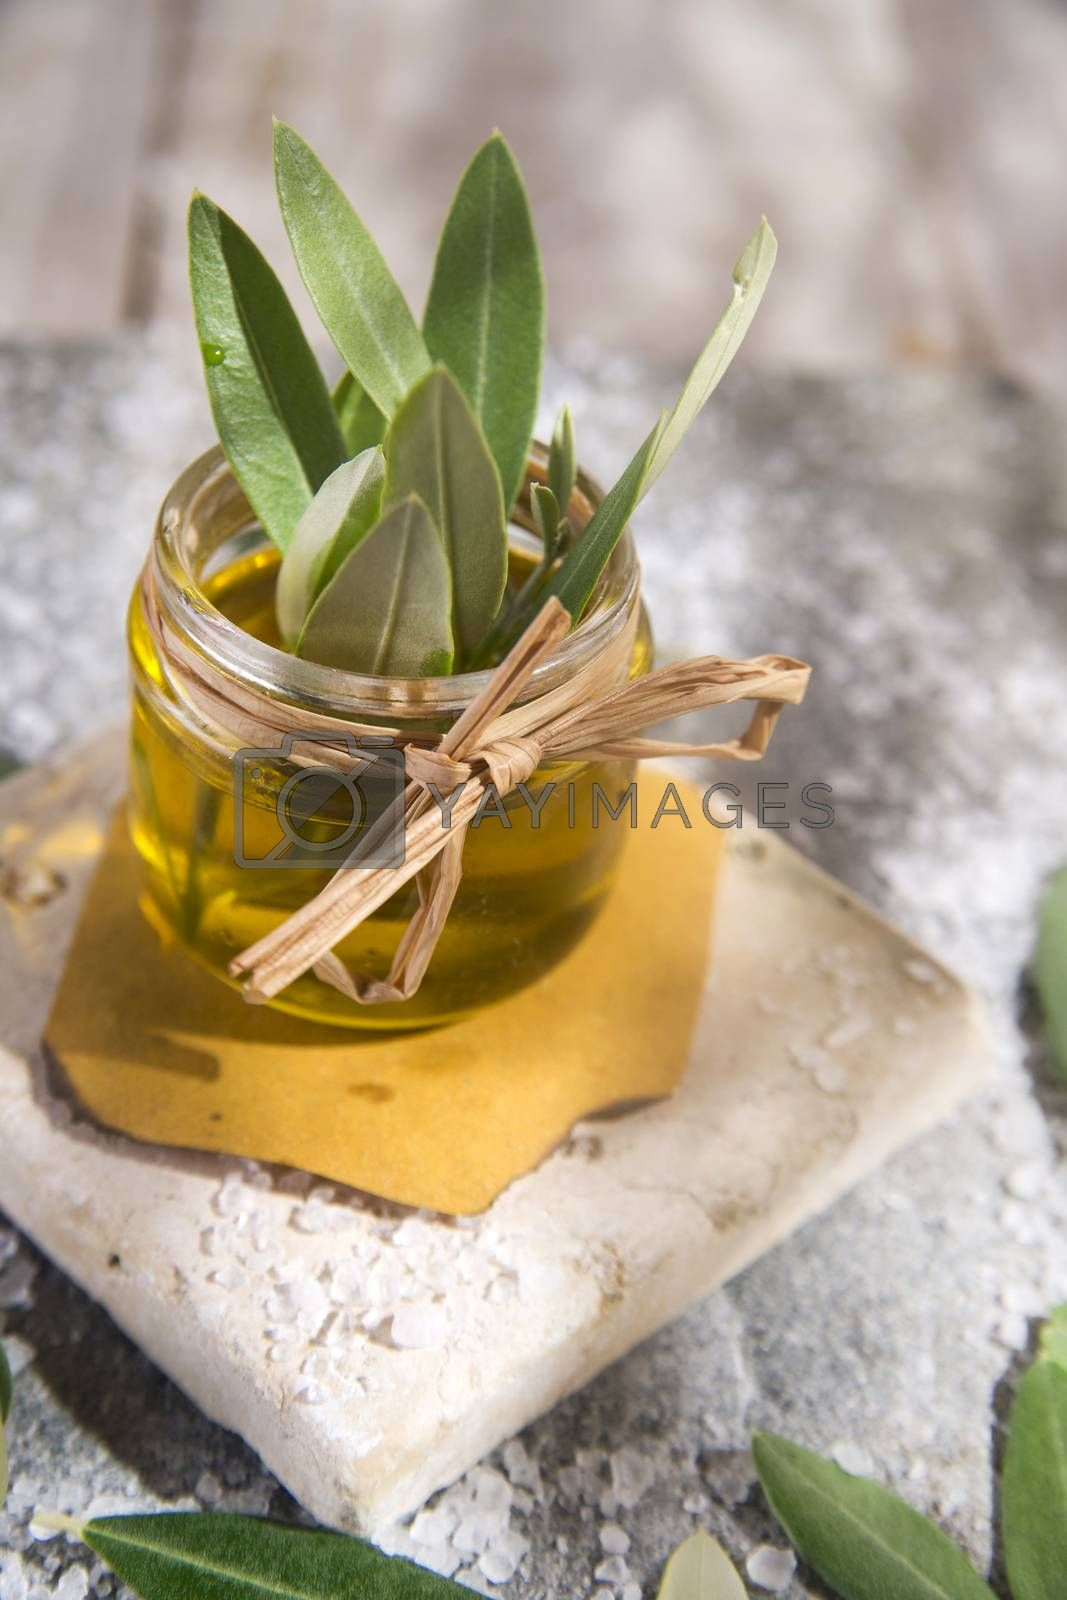 Royalty free image of Small glass jar containing olive oil  by marcoguidiph